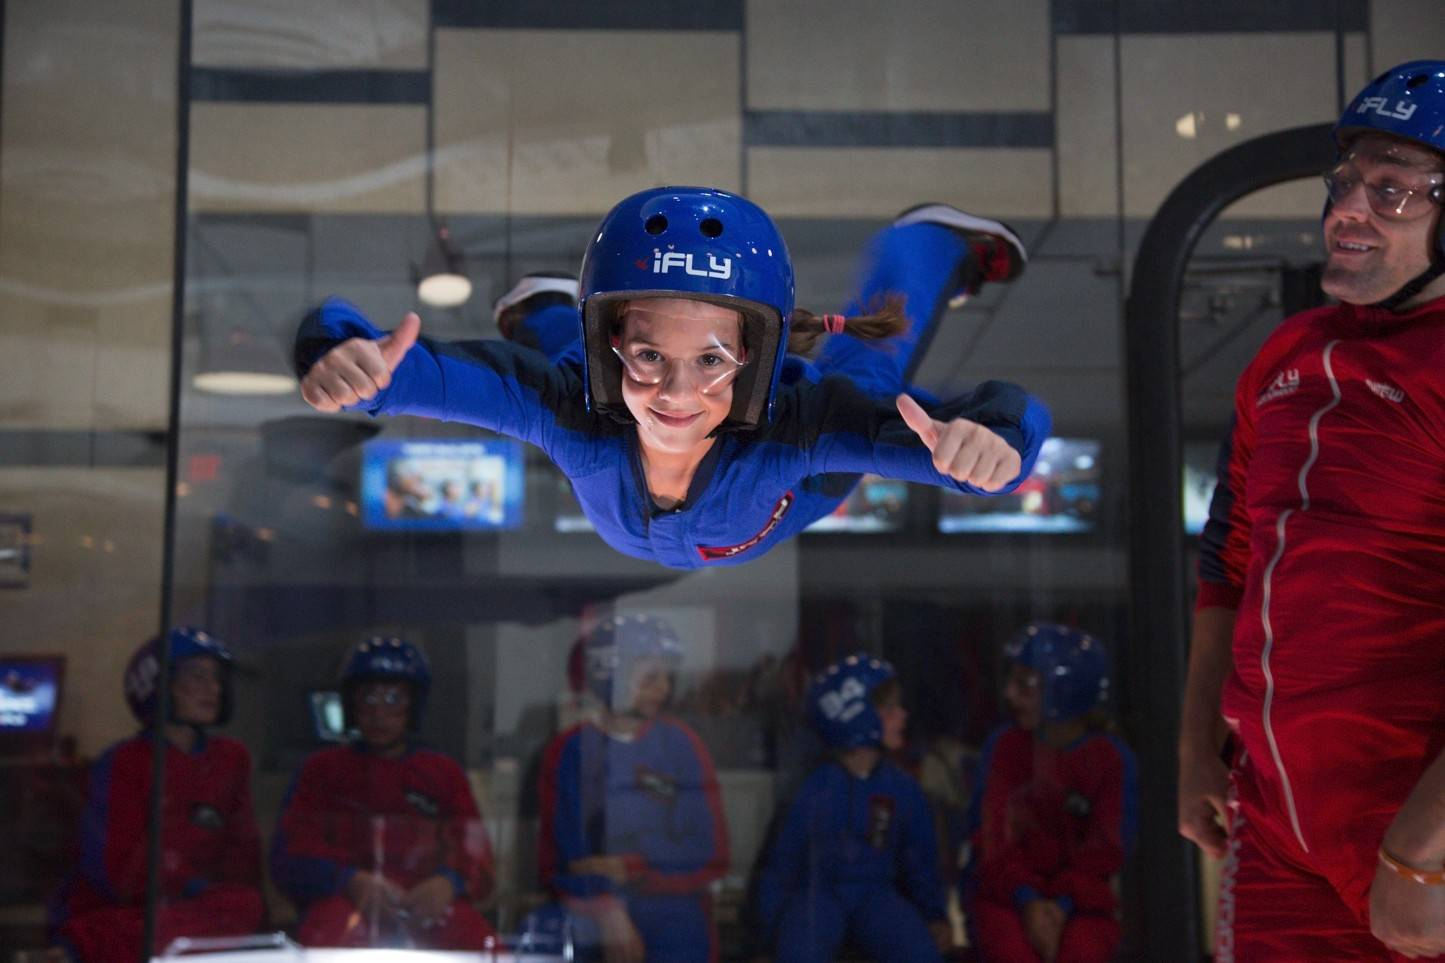 Soar into spring with new IFLY Indoor Skydiving facilities opening in the suburbs.